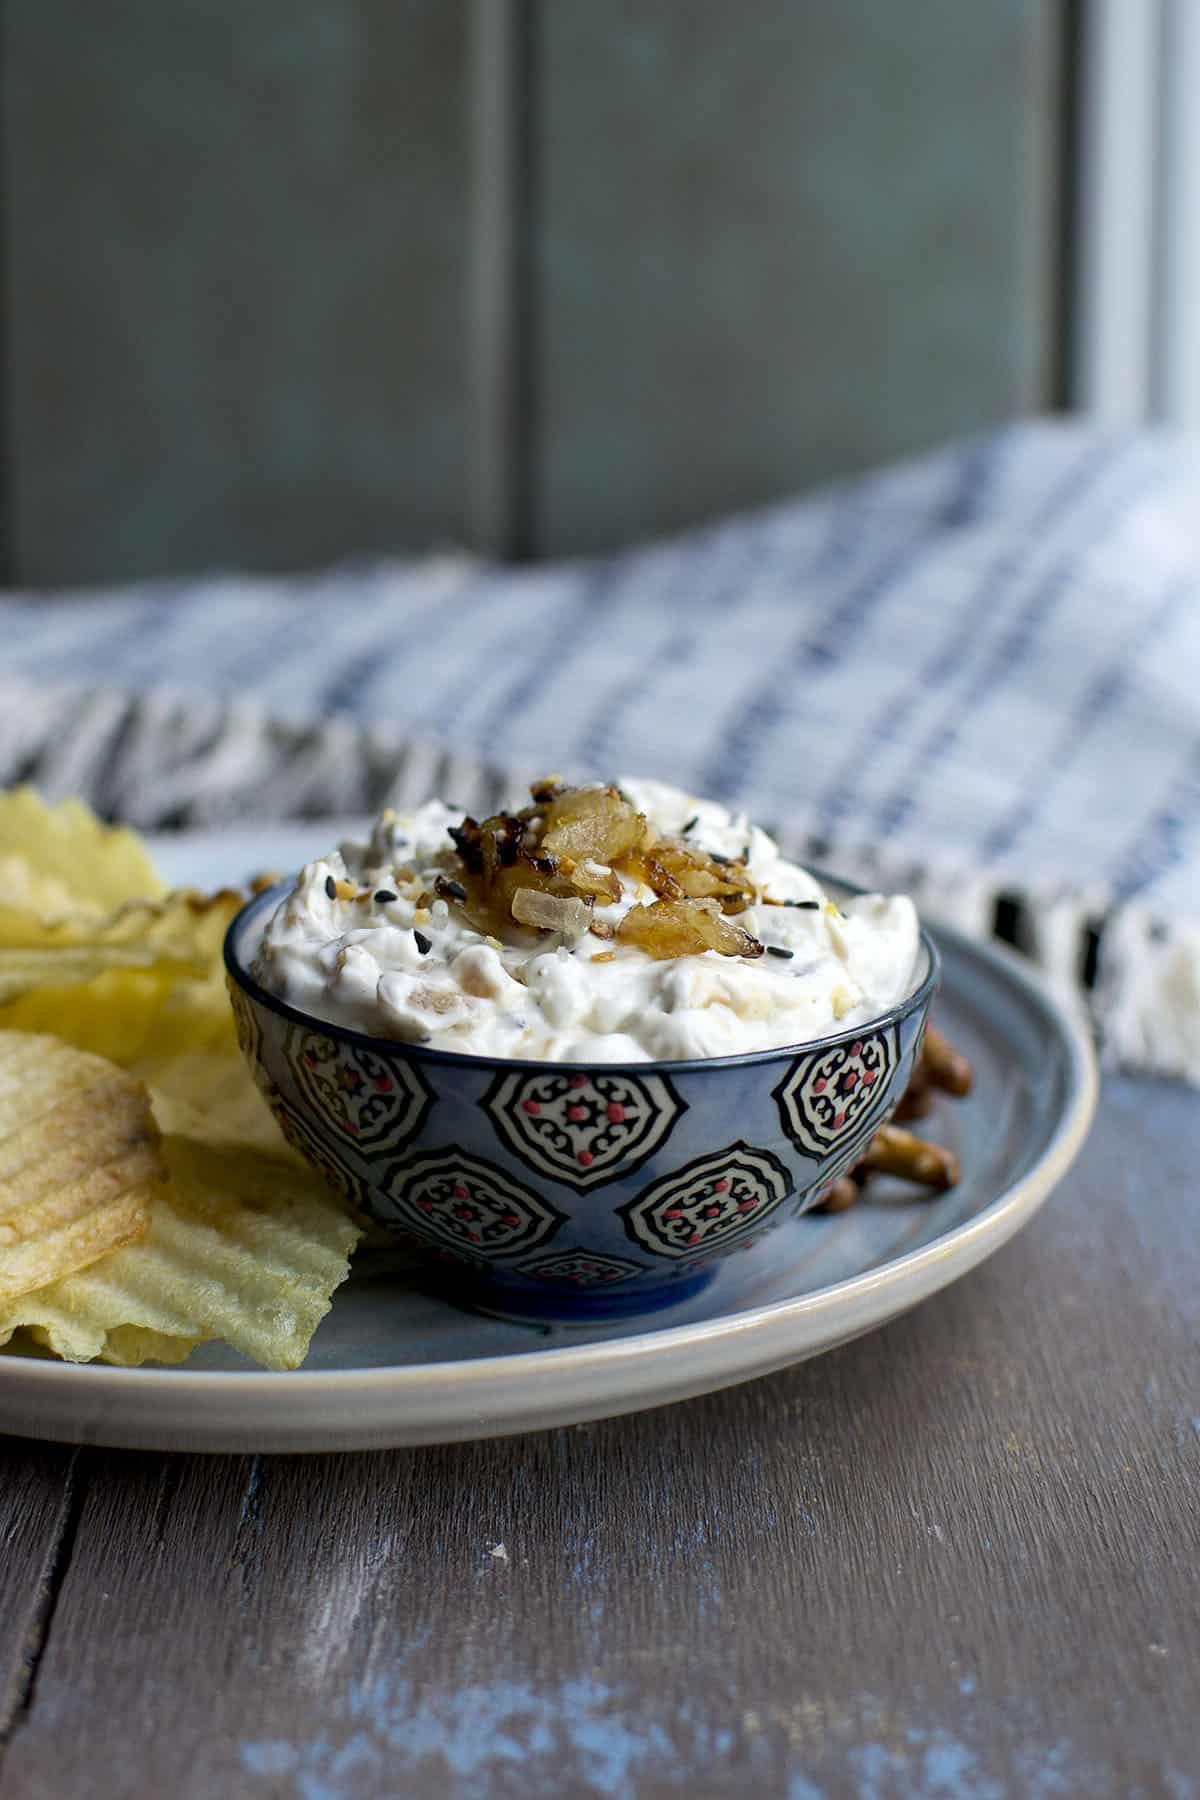 Blue bowl with creamy onion dip topped with caramelized onions